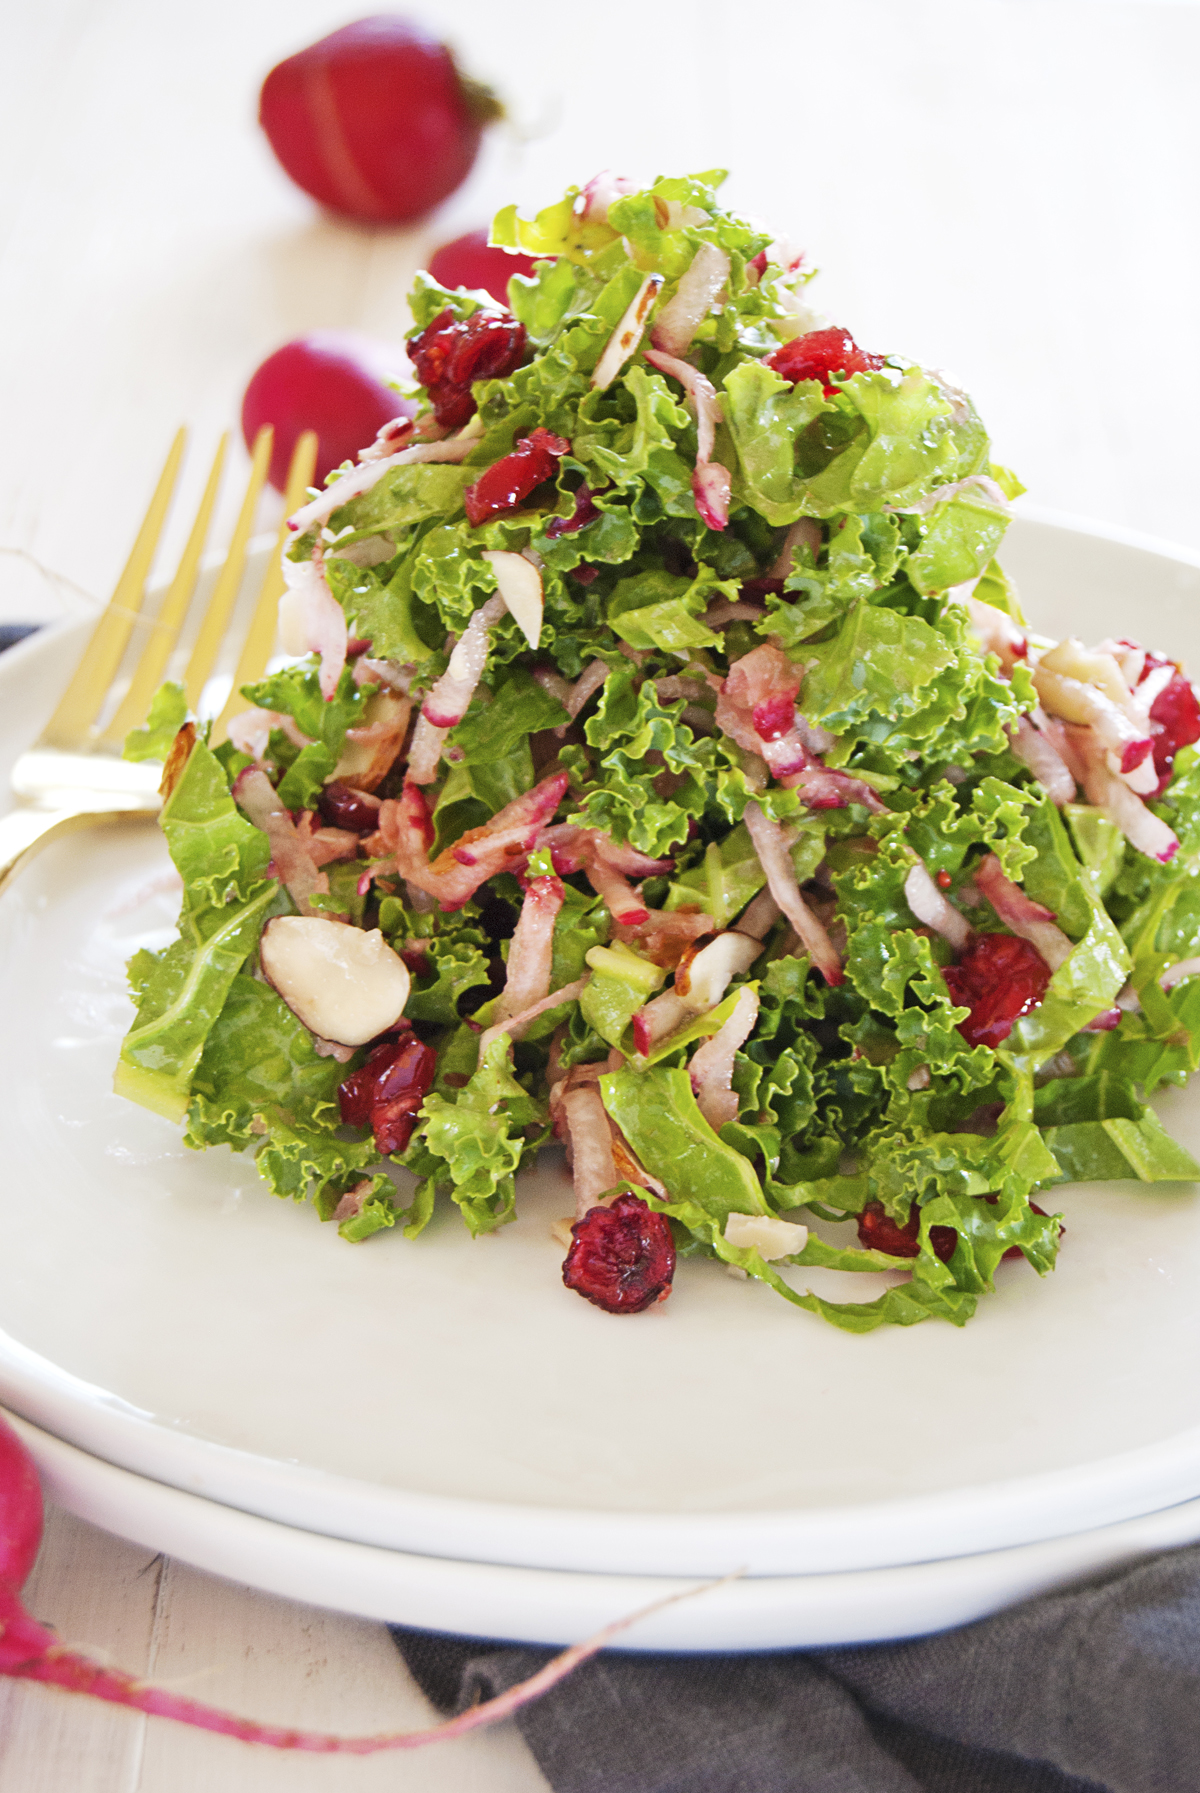 This refreshing kale and radish slaw features shredded kale and radish paired with slivered almonds, dried cranberries, and a refreshing vinaigrette.